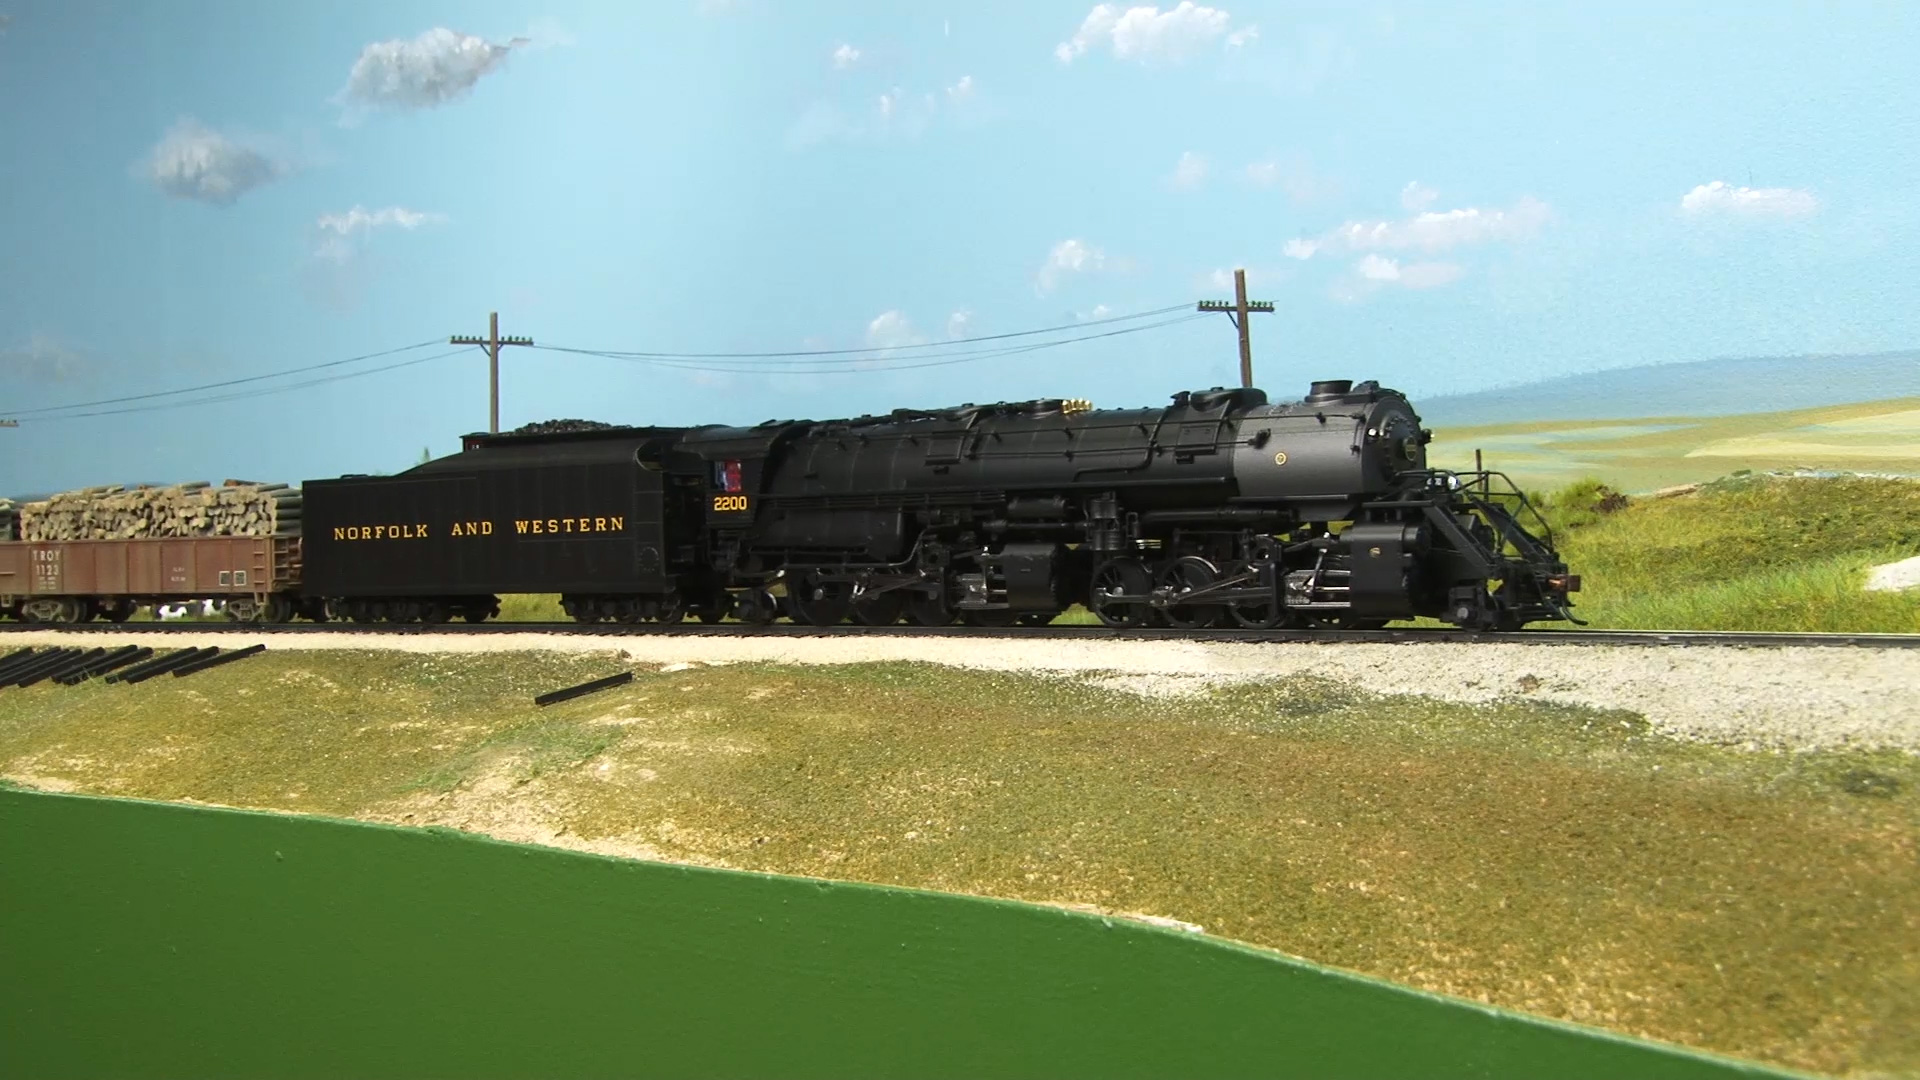 Mr product review broadway limited ho scale norfolk western y6b mr product review broadway limited ho scale norfolk western y6b steam locomotive modelrailroadervideoplus asfbconference2016 Choice Image